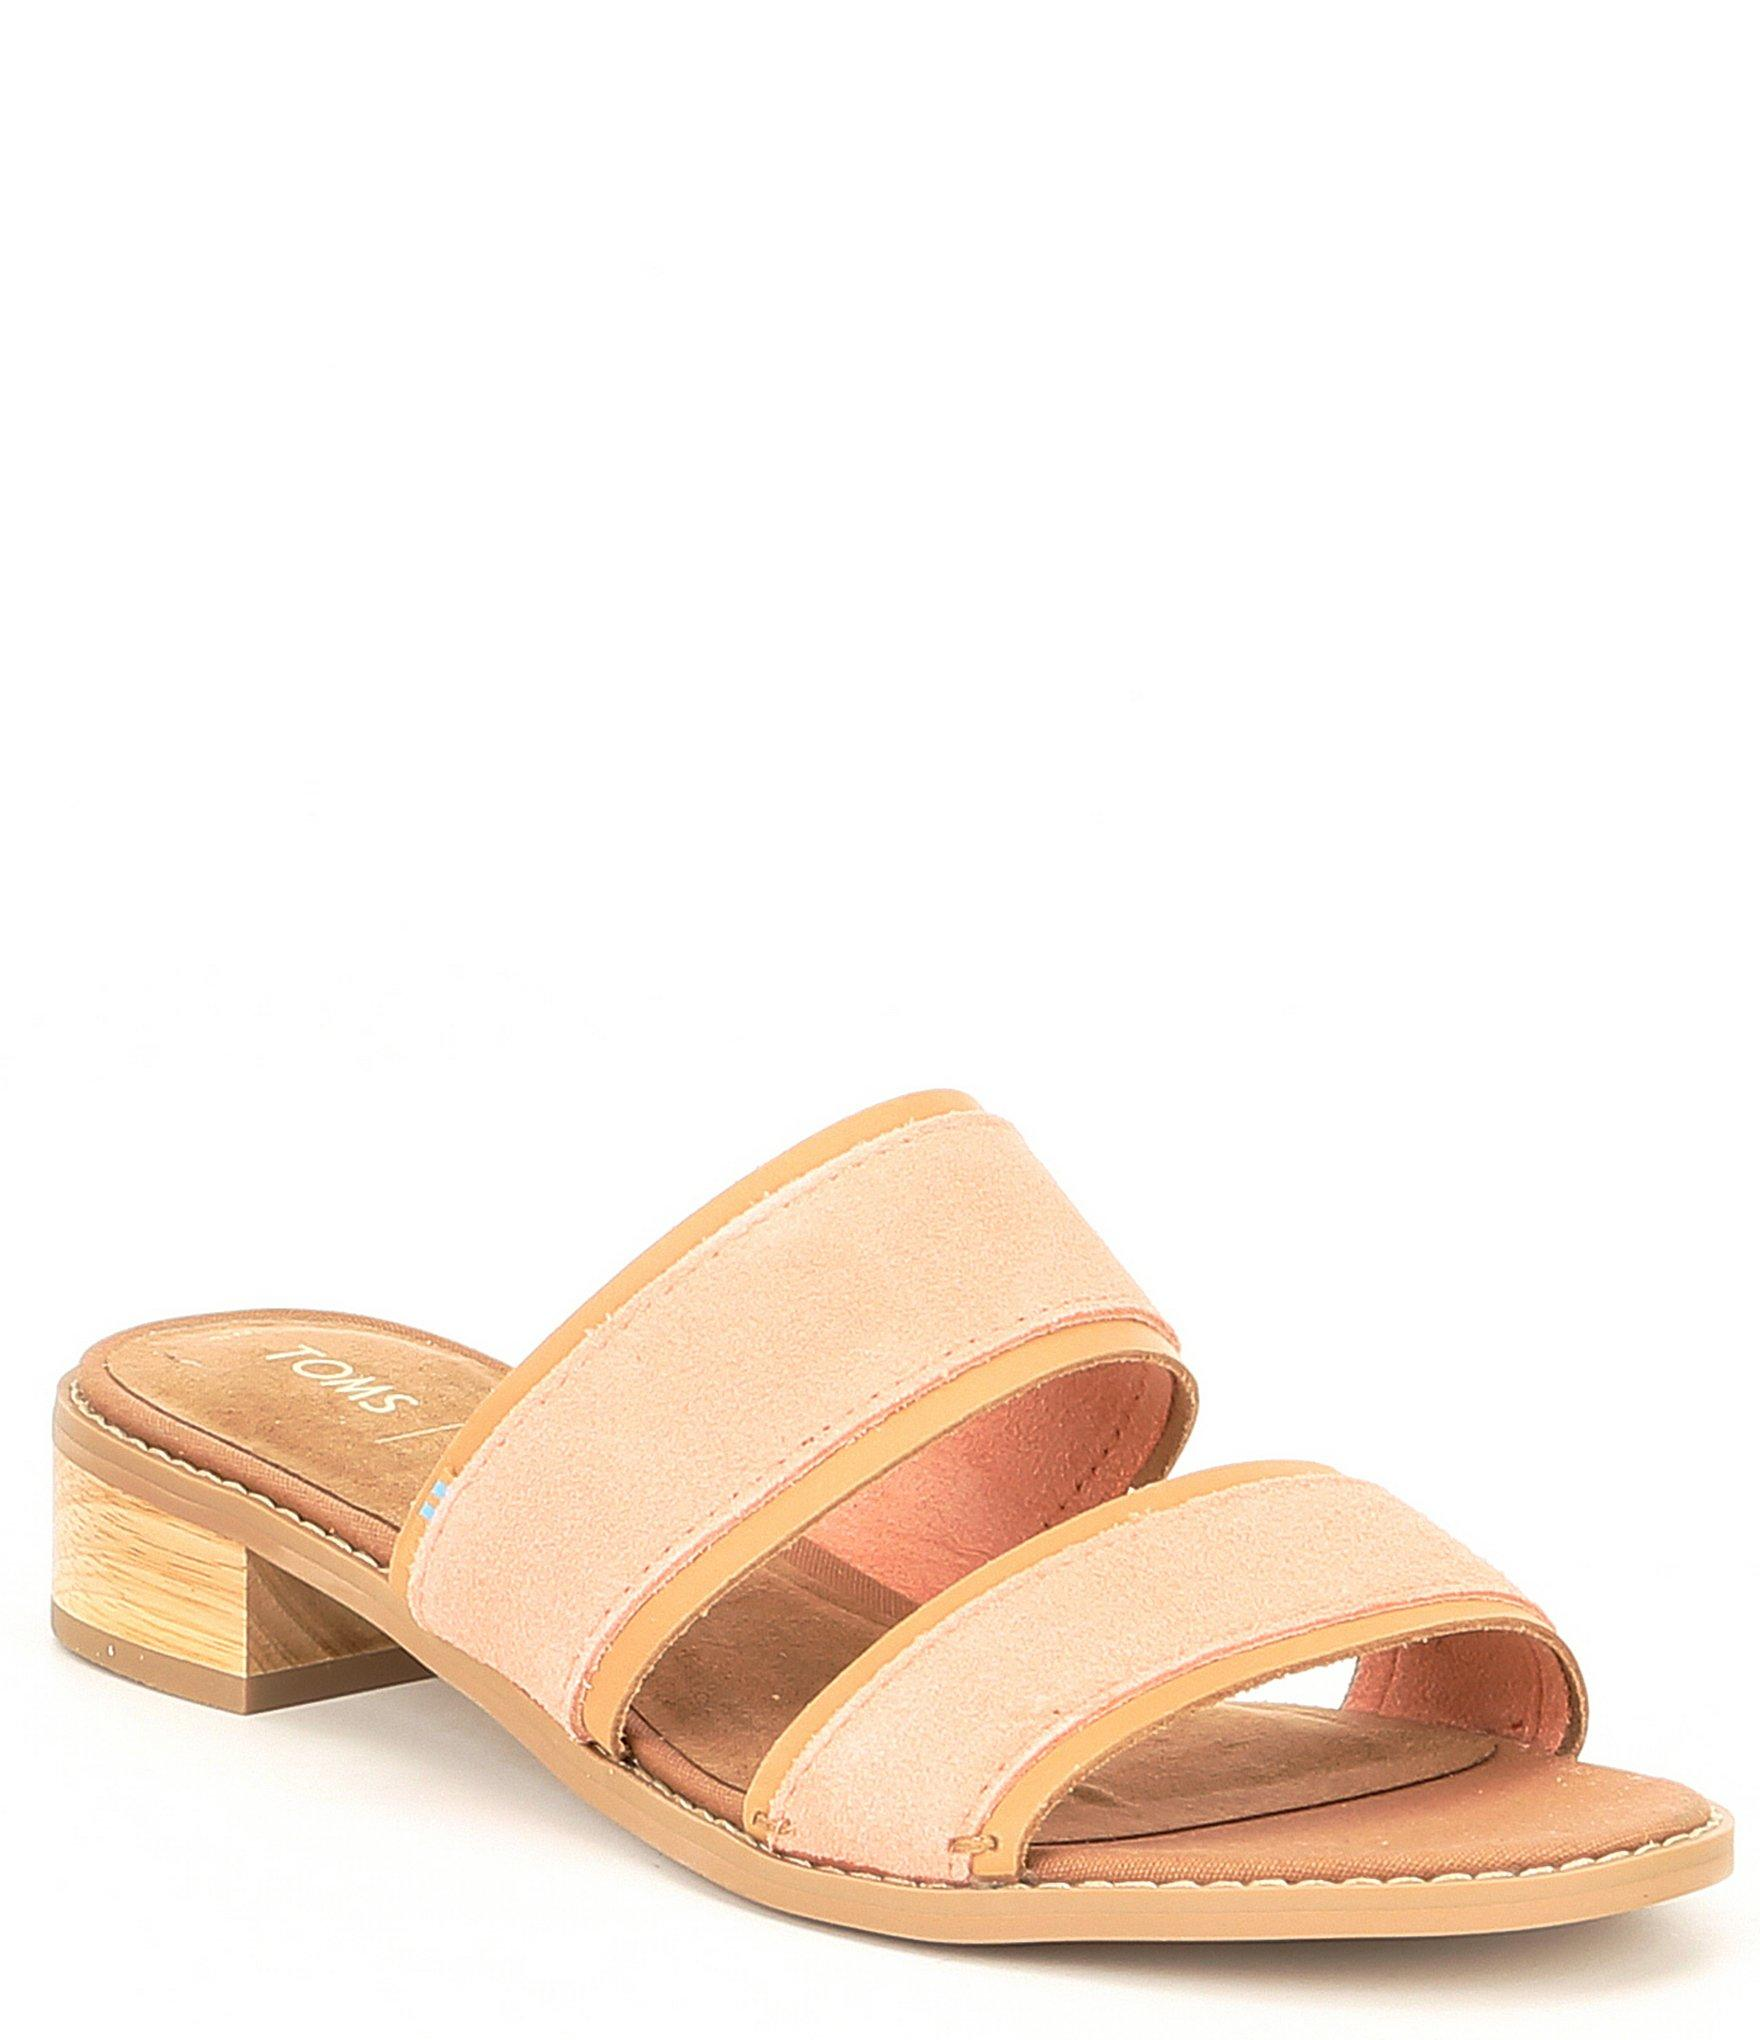 98cd8c1af55 Lyst - TOMS Mariposa Suede Slide Block Heel Sandals in Pink